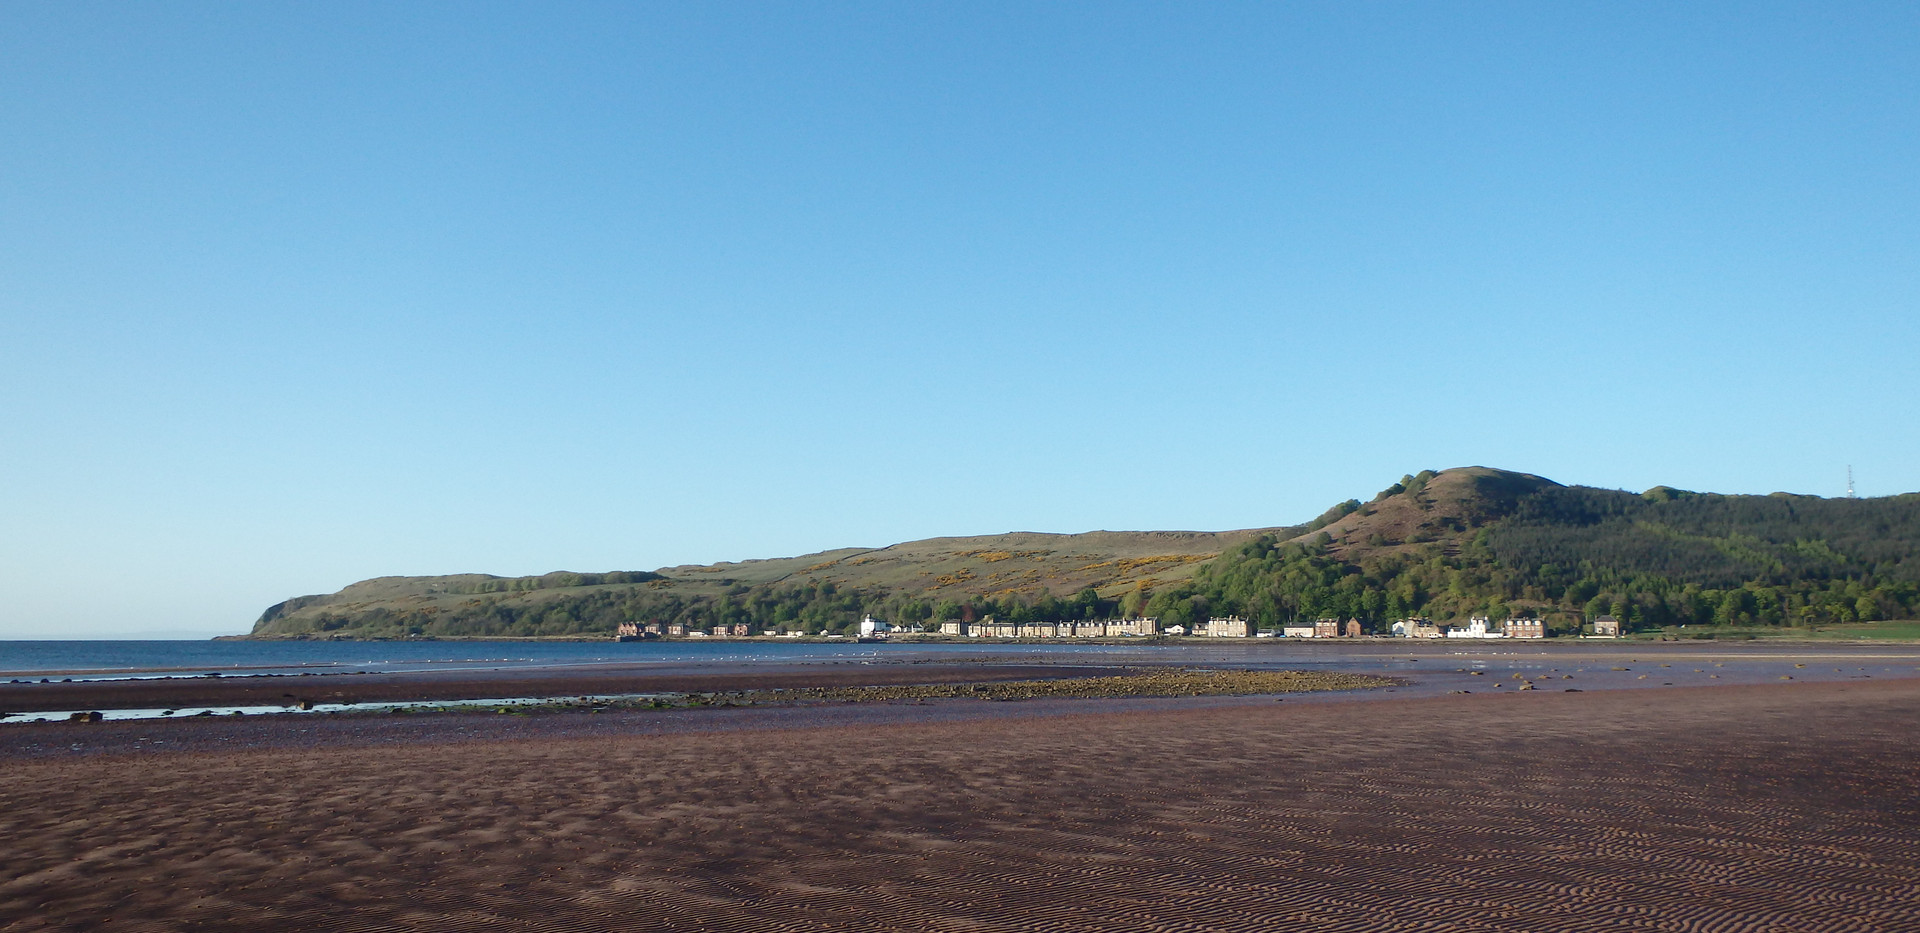 Looking back at Kilchattan village from the northern end of the bay.